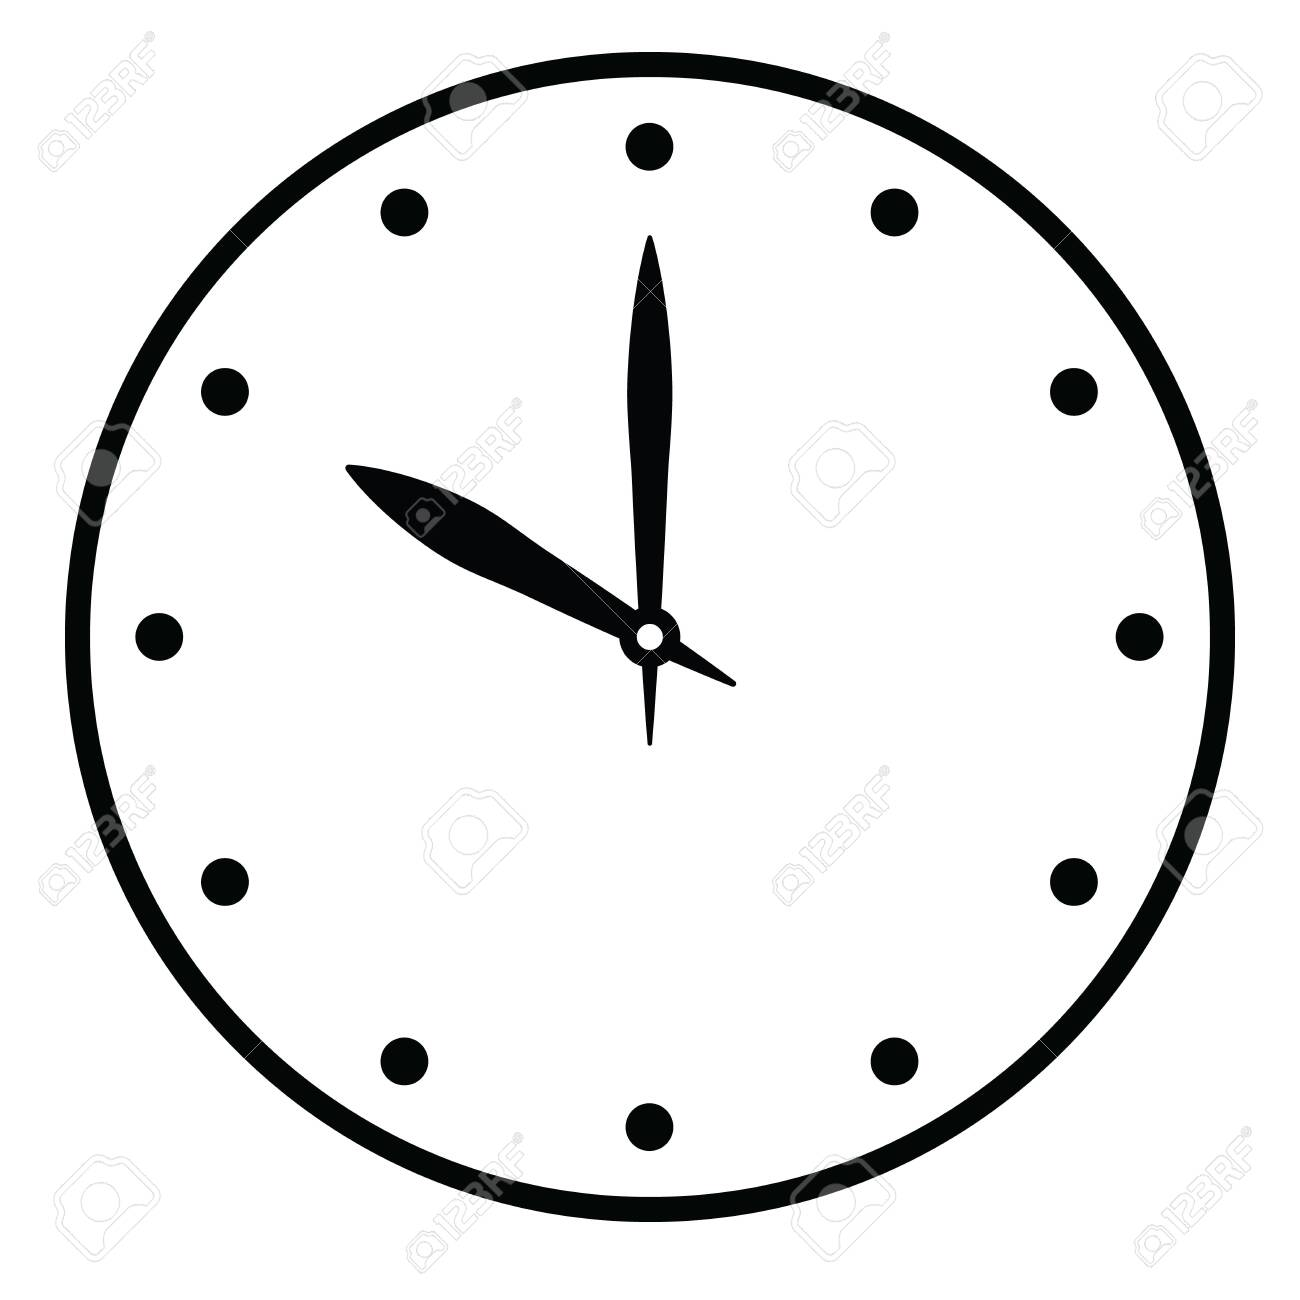 Clock face. Blank hour dial with hour and minute hand. Dots mark hours. Simple flat vector illustration. - 124097263